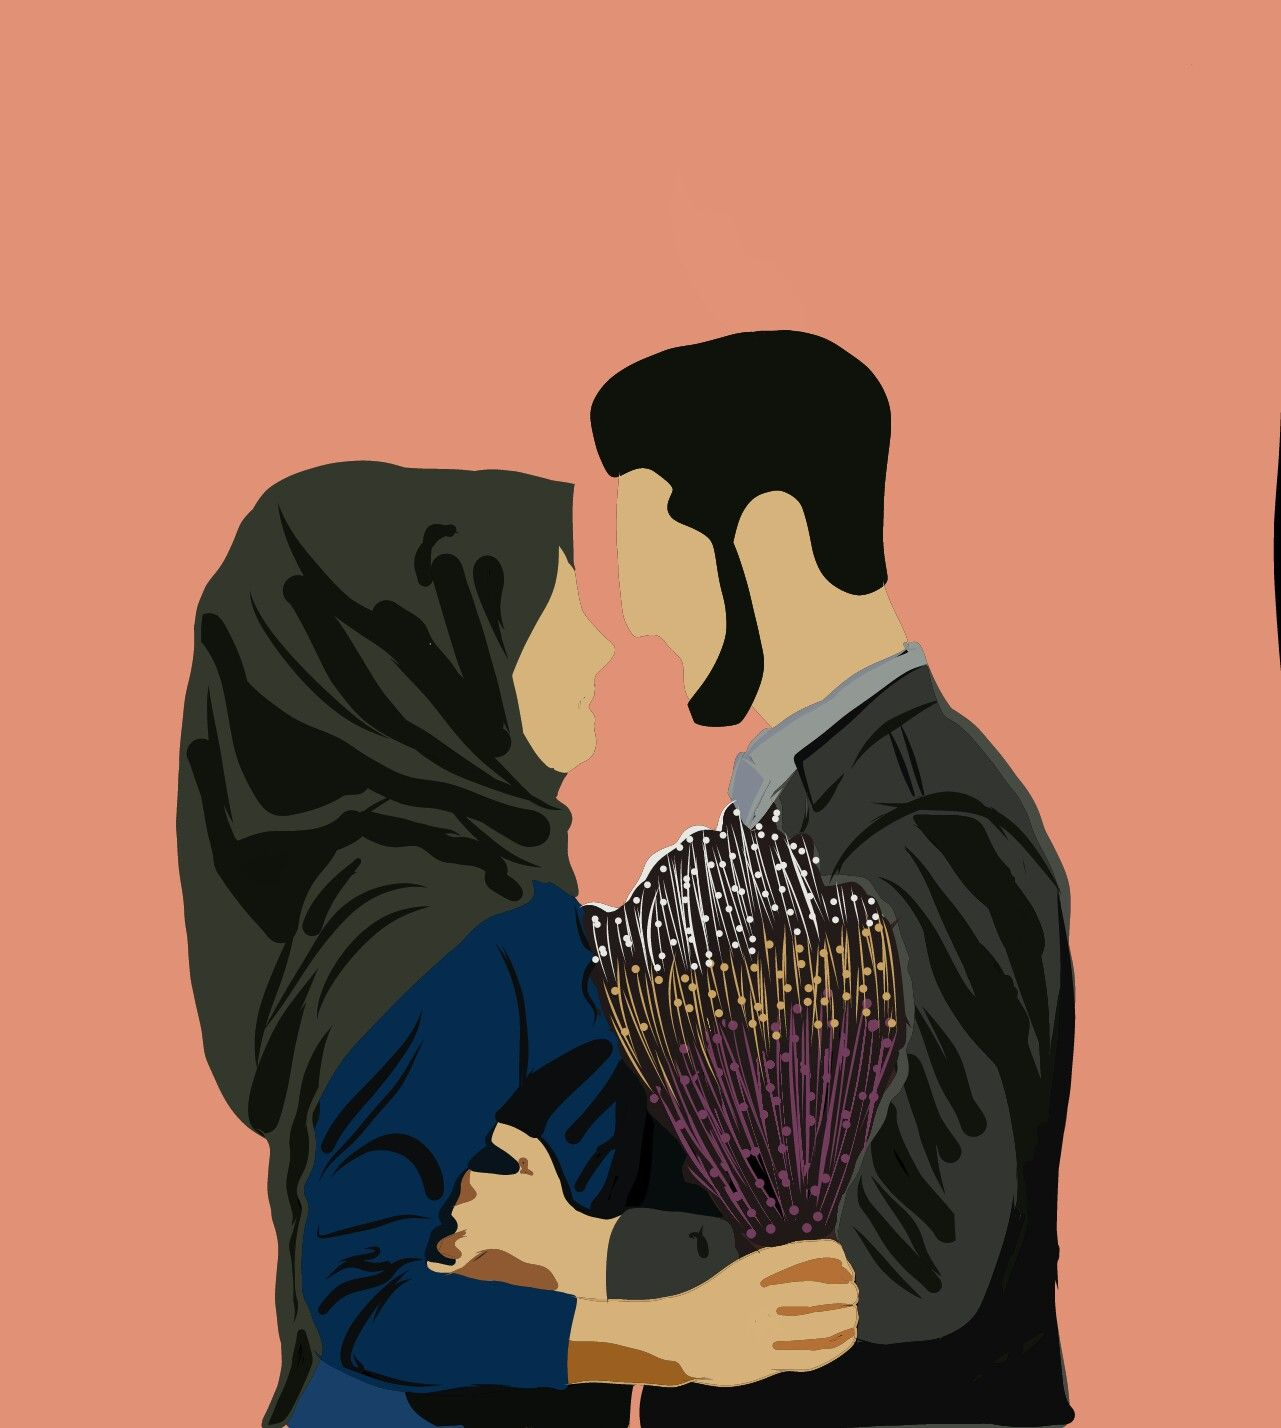 Pin By Faisal Turk On Muslim Couple Art Love Cartoon Couple Anime Muslim Cute Couple Art